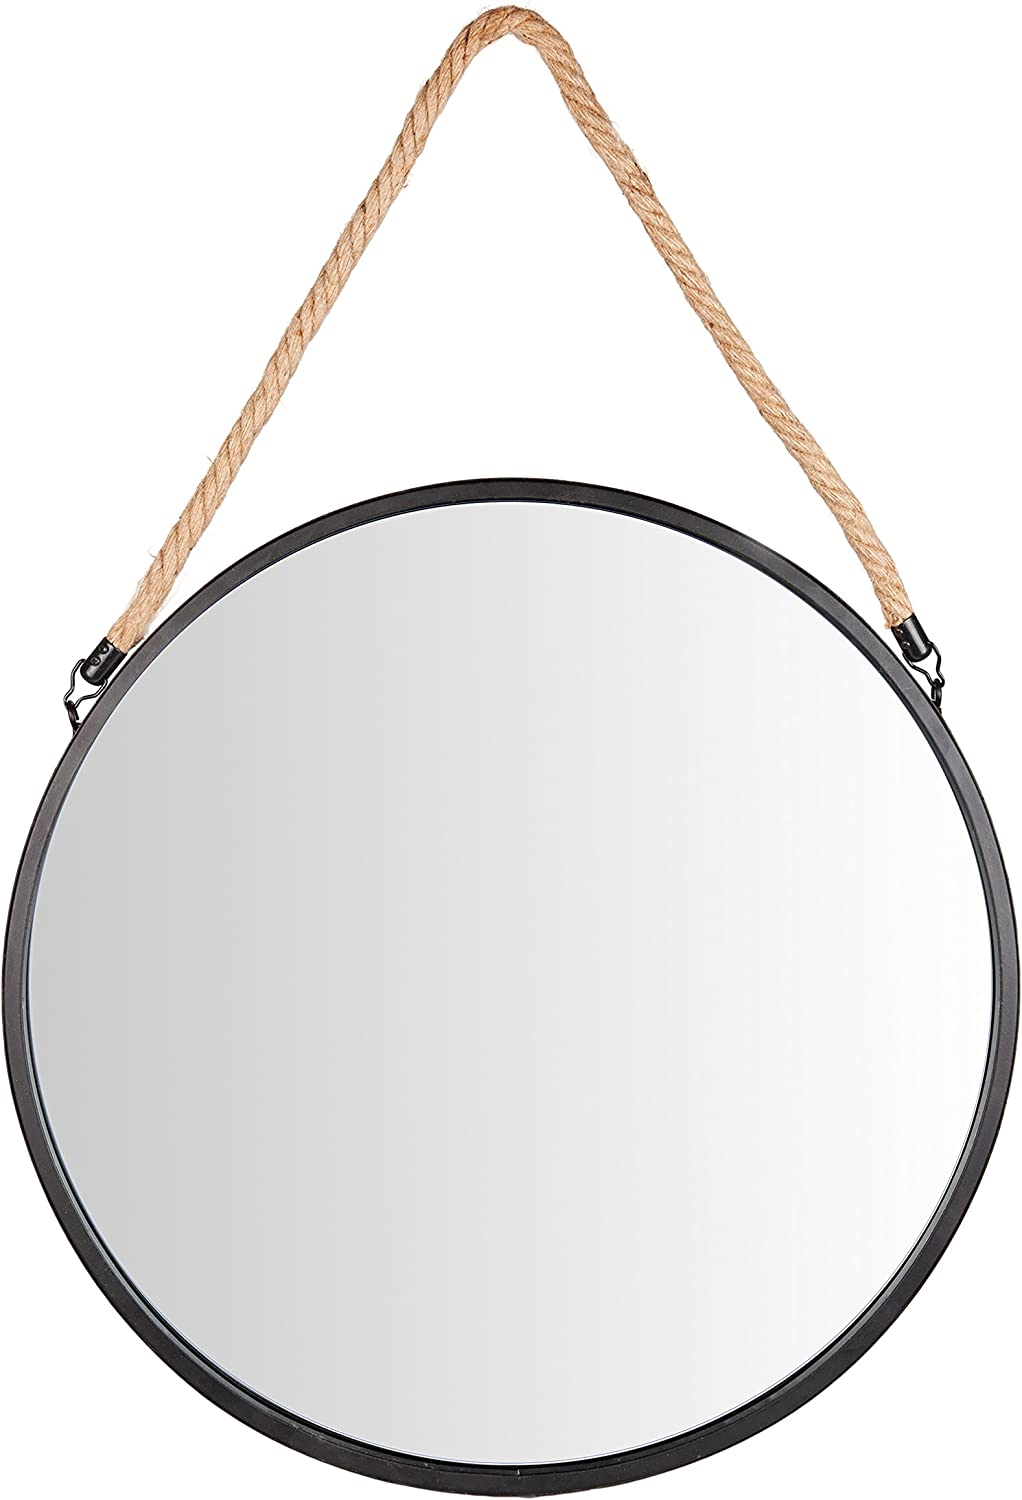 Framed 20″ Decorative Round Black Metal Circle Wall Mirror